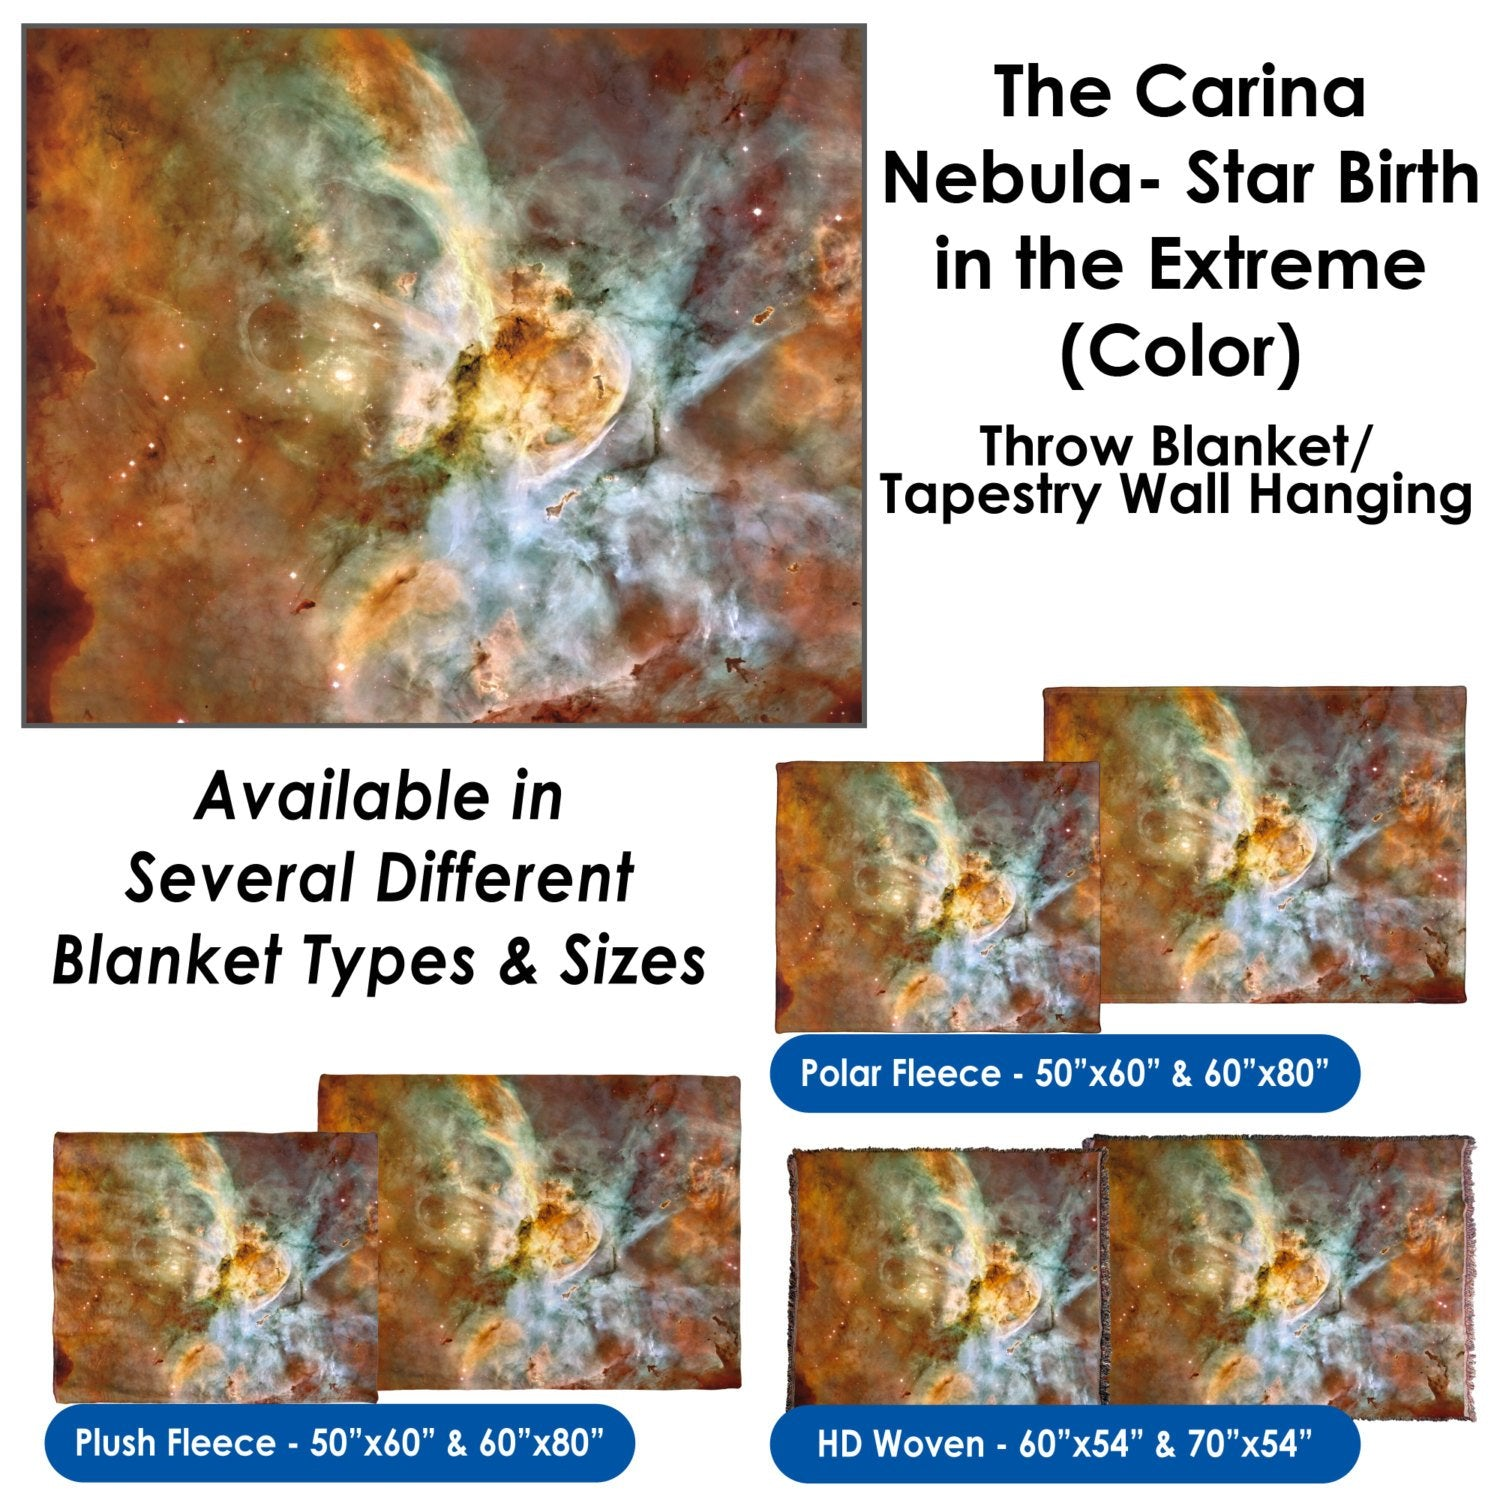 The Carina Nebula, Star Birth in the Extreme (Color) – Throw Blanket / Tapestry Wall Hanging